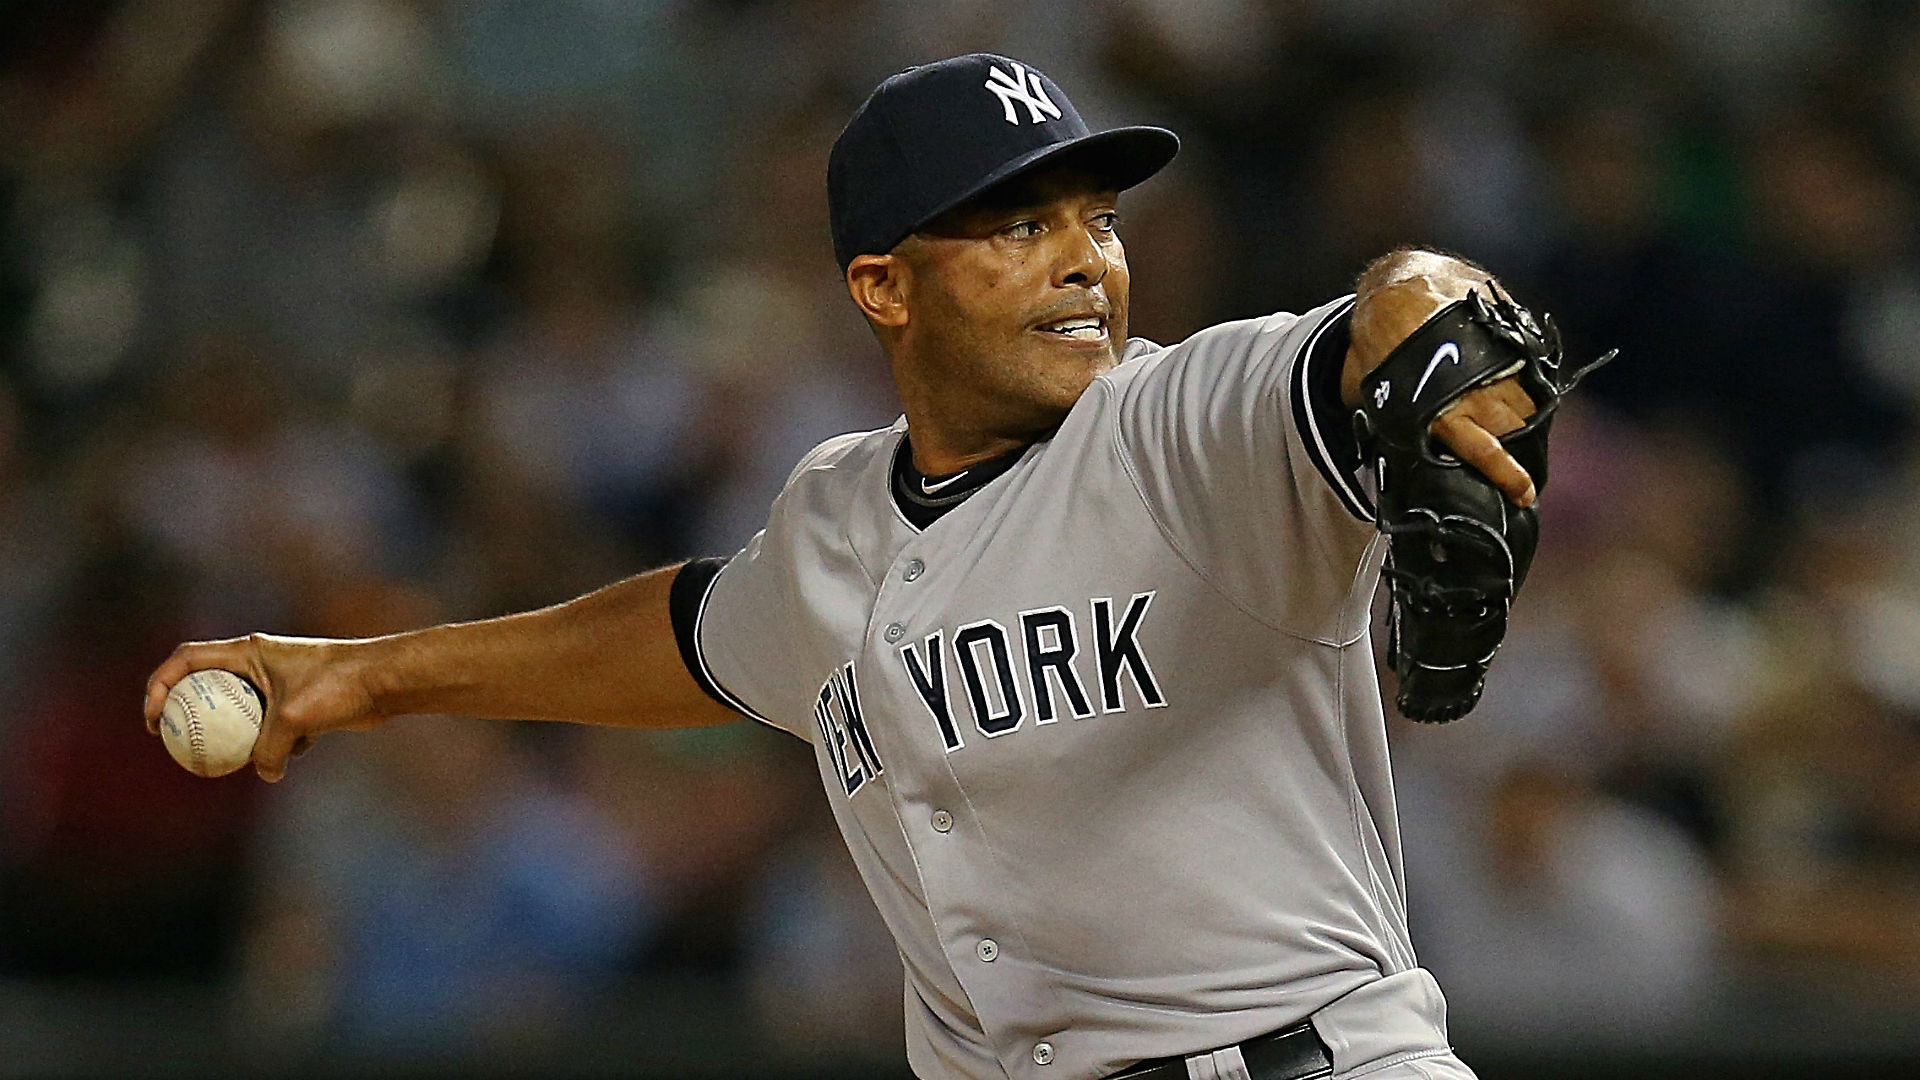 Mariano-rivera-yankees-011919-getty-images-ftr_gyvary8jfw2414vjx0qvfeqkg